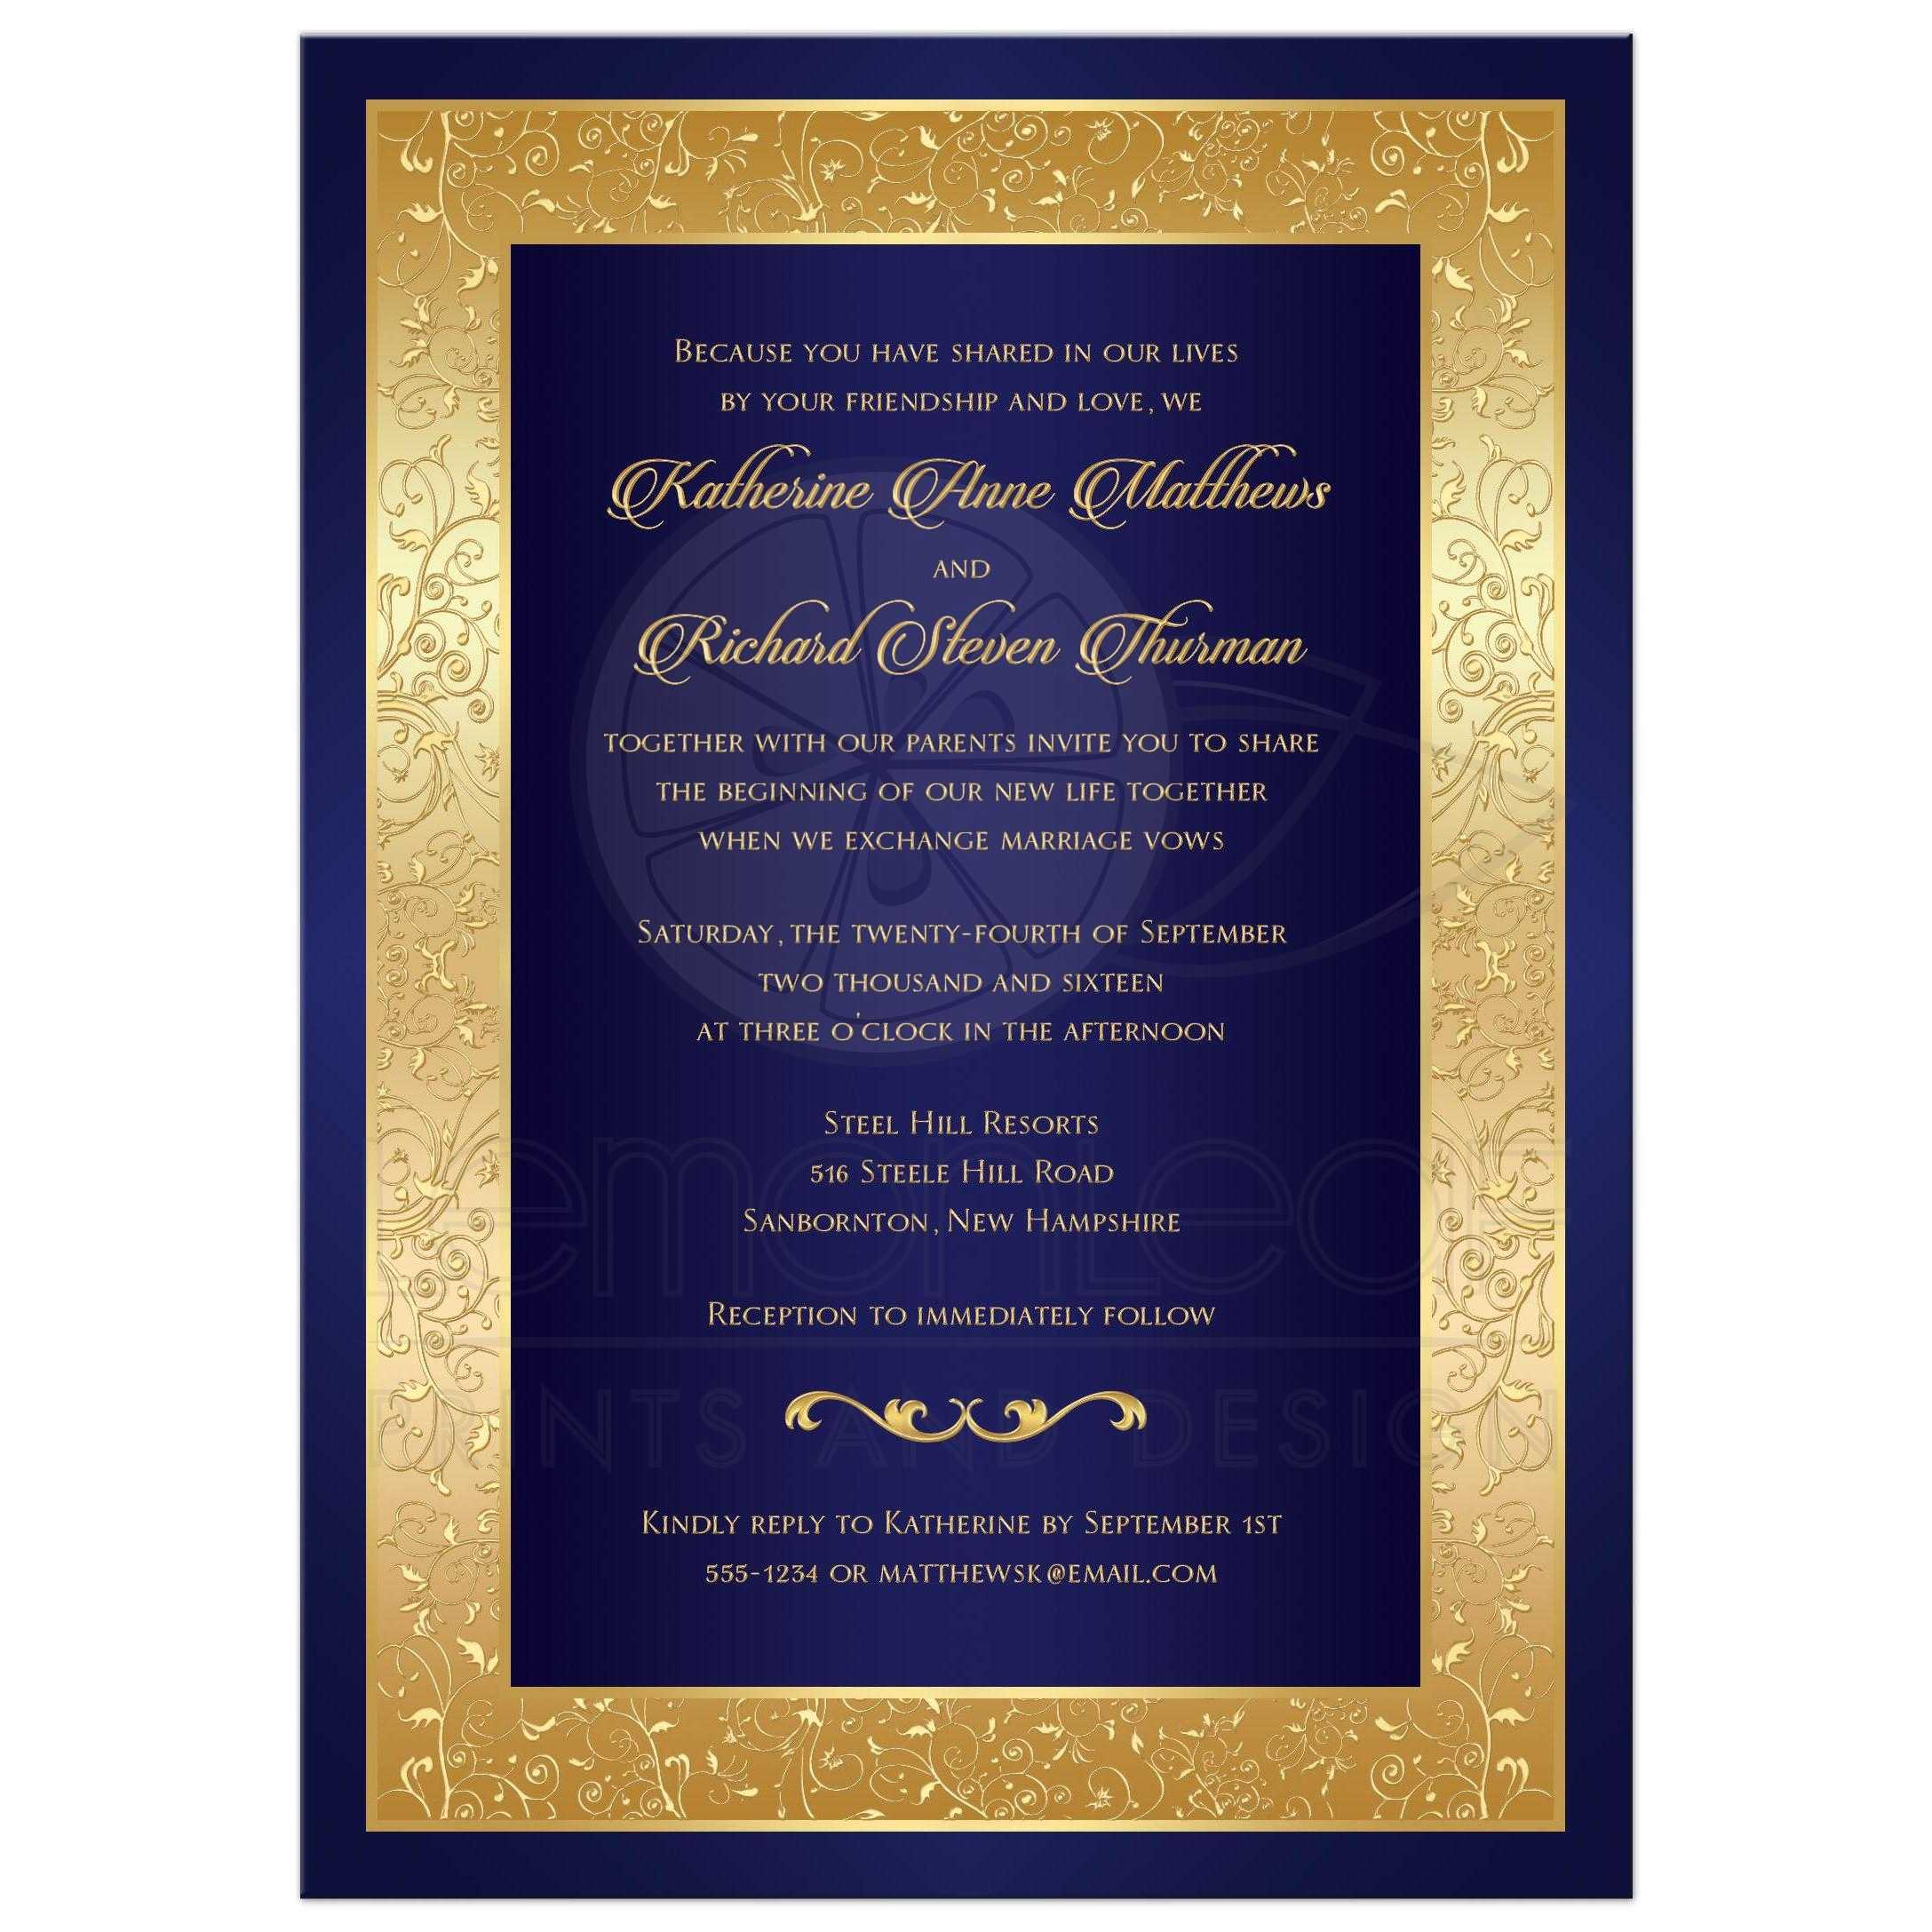 Blue And Gold Wedding Invitation With Floral Scrolled Border ...